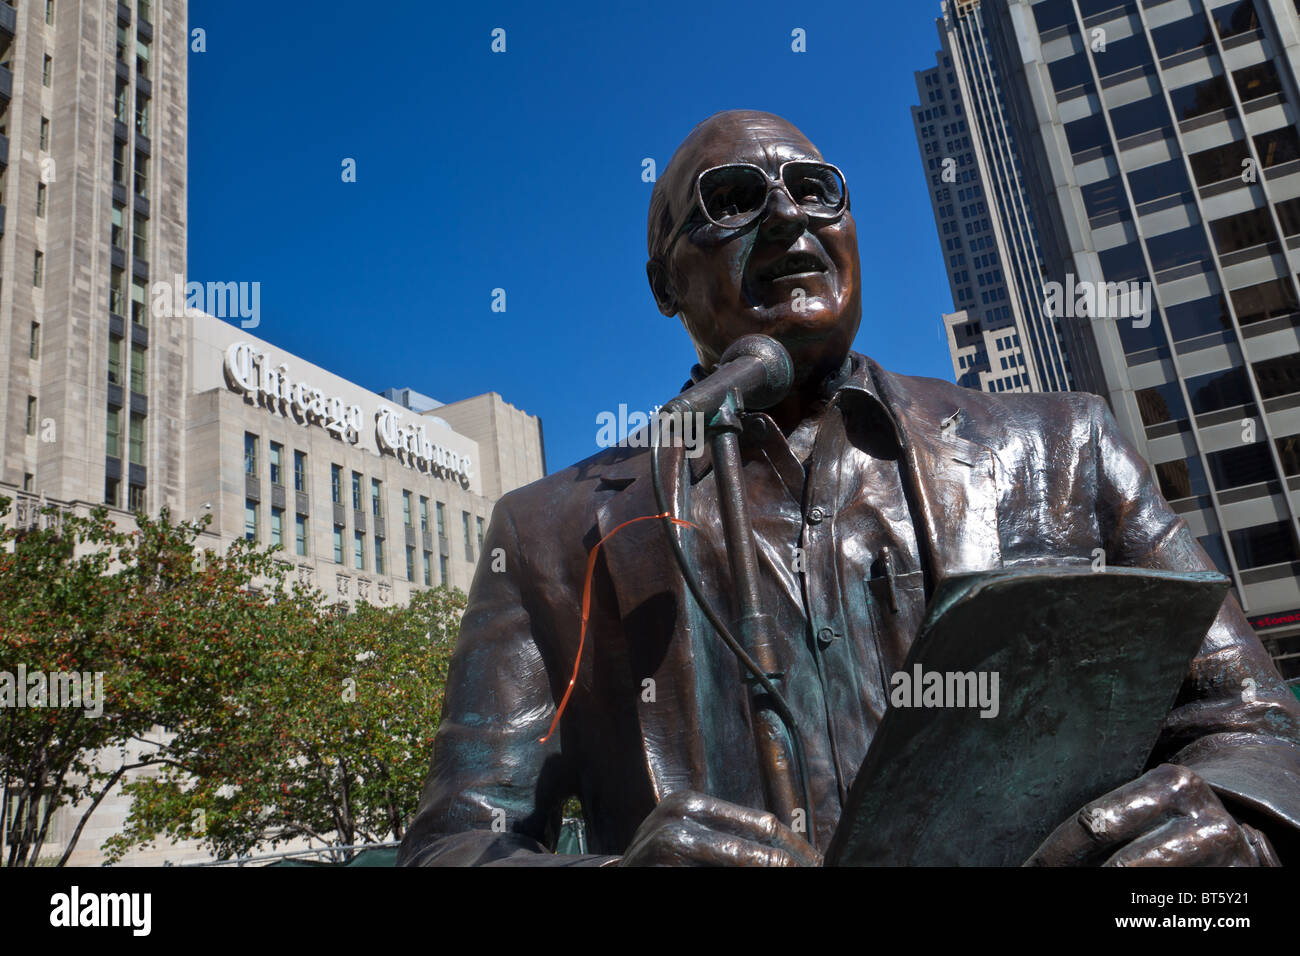 Statue of legendary Chicago broadcaster Jack Brickhouse in Pioneer Court along Michigan Ave Bridge in Chicago, IL, - Stock Image